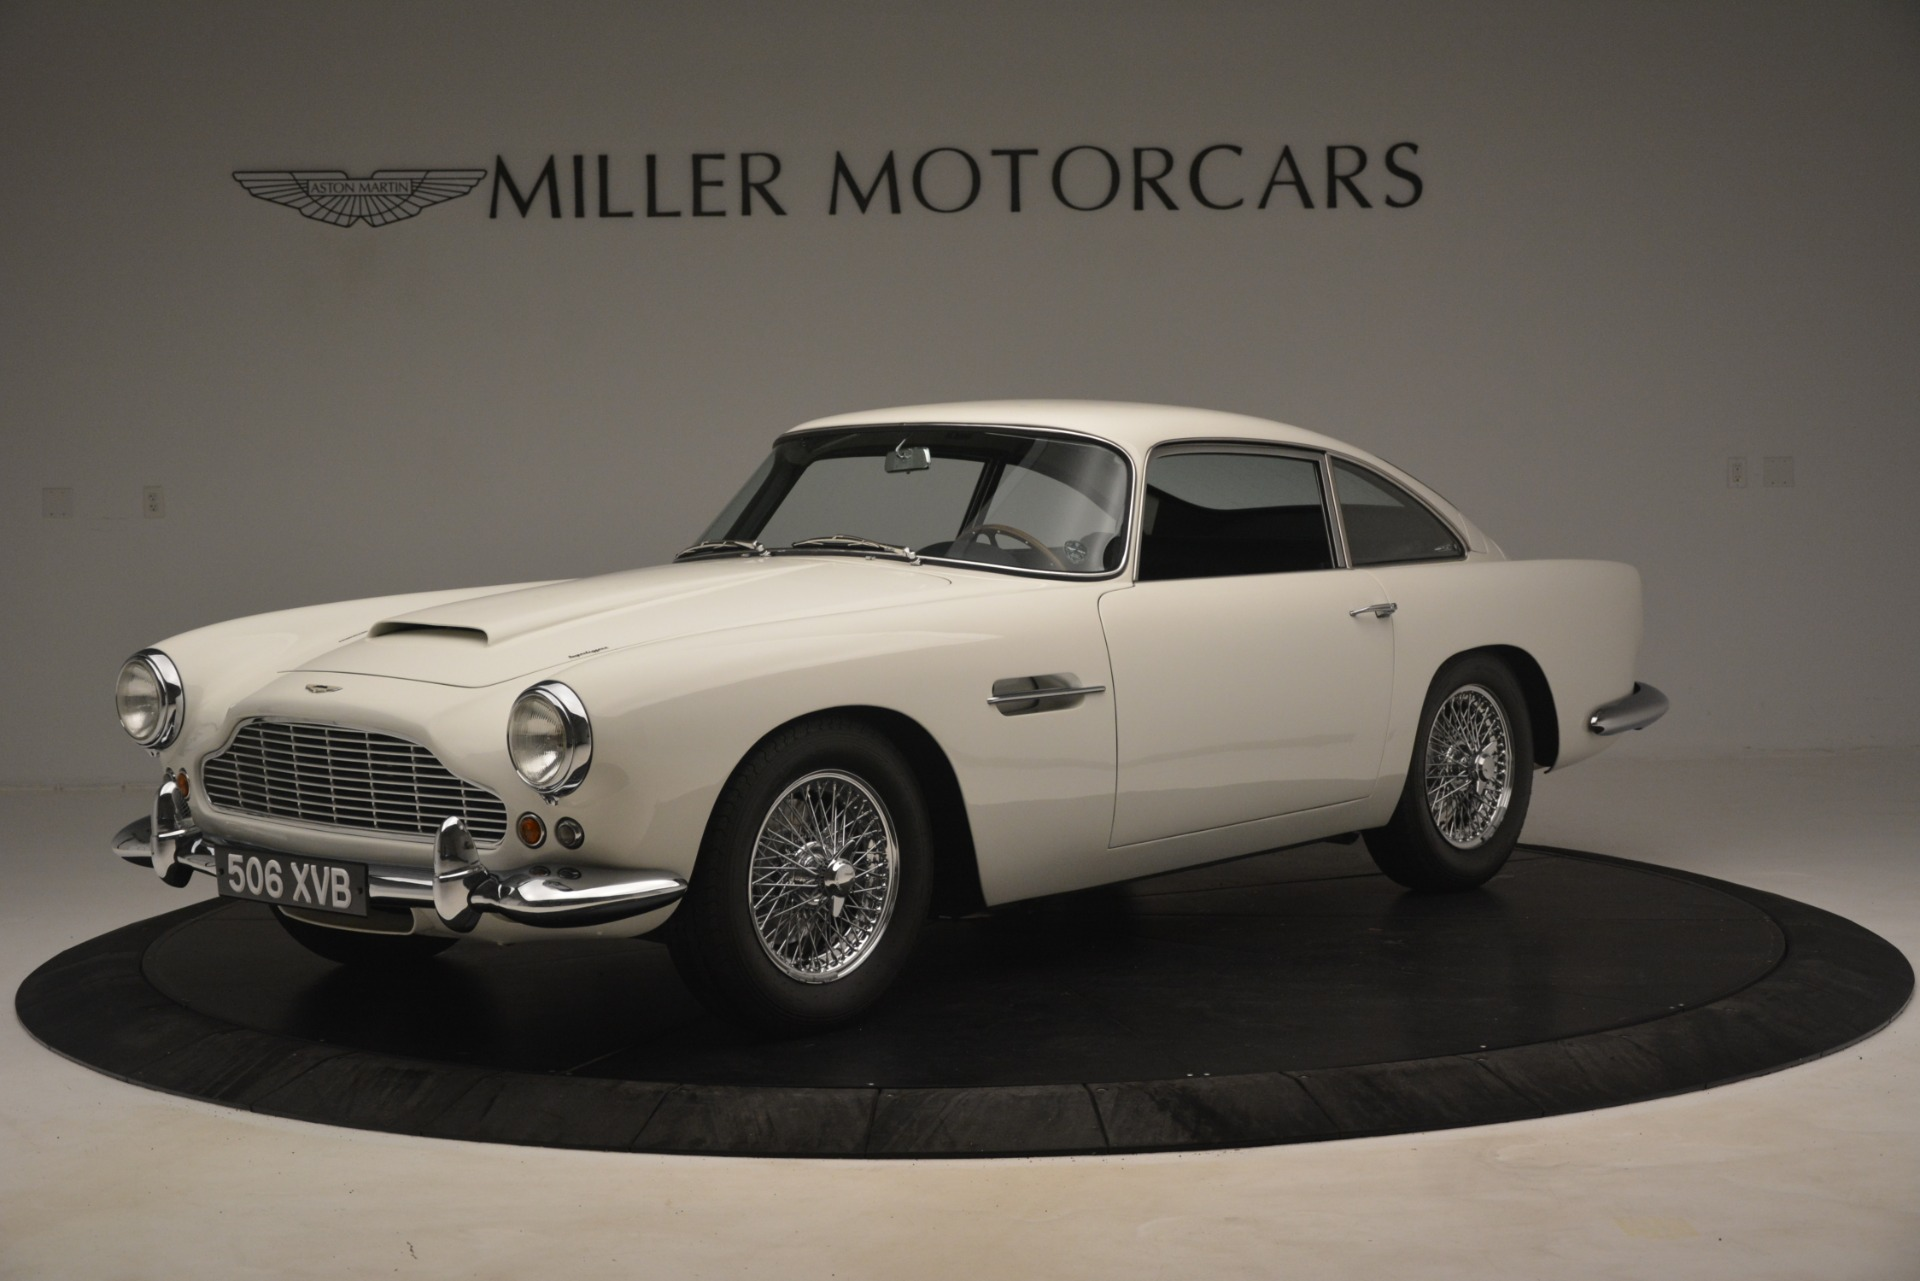 Used 1961 Aston Martin DB4 Series IV Coupe for sale $625,900 at Rolls-Royce Motor Cars Greenwich in Greenwich CT 06830 1